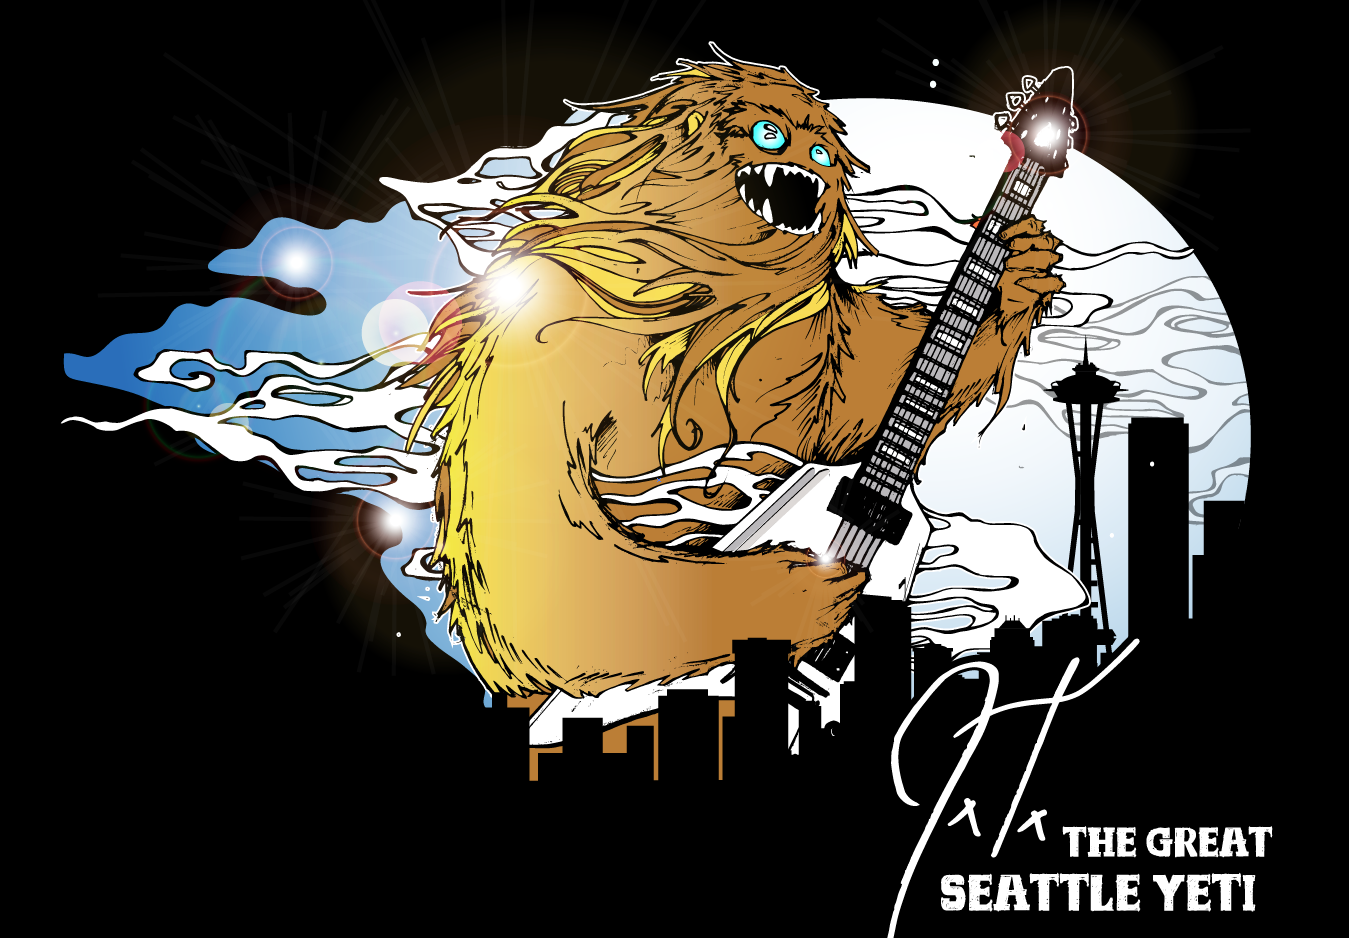 GREAT SEATTLE YETI